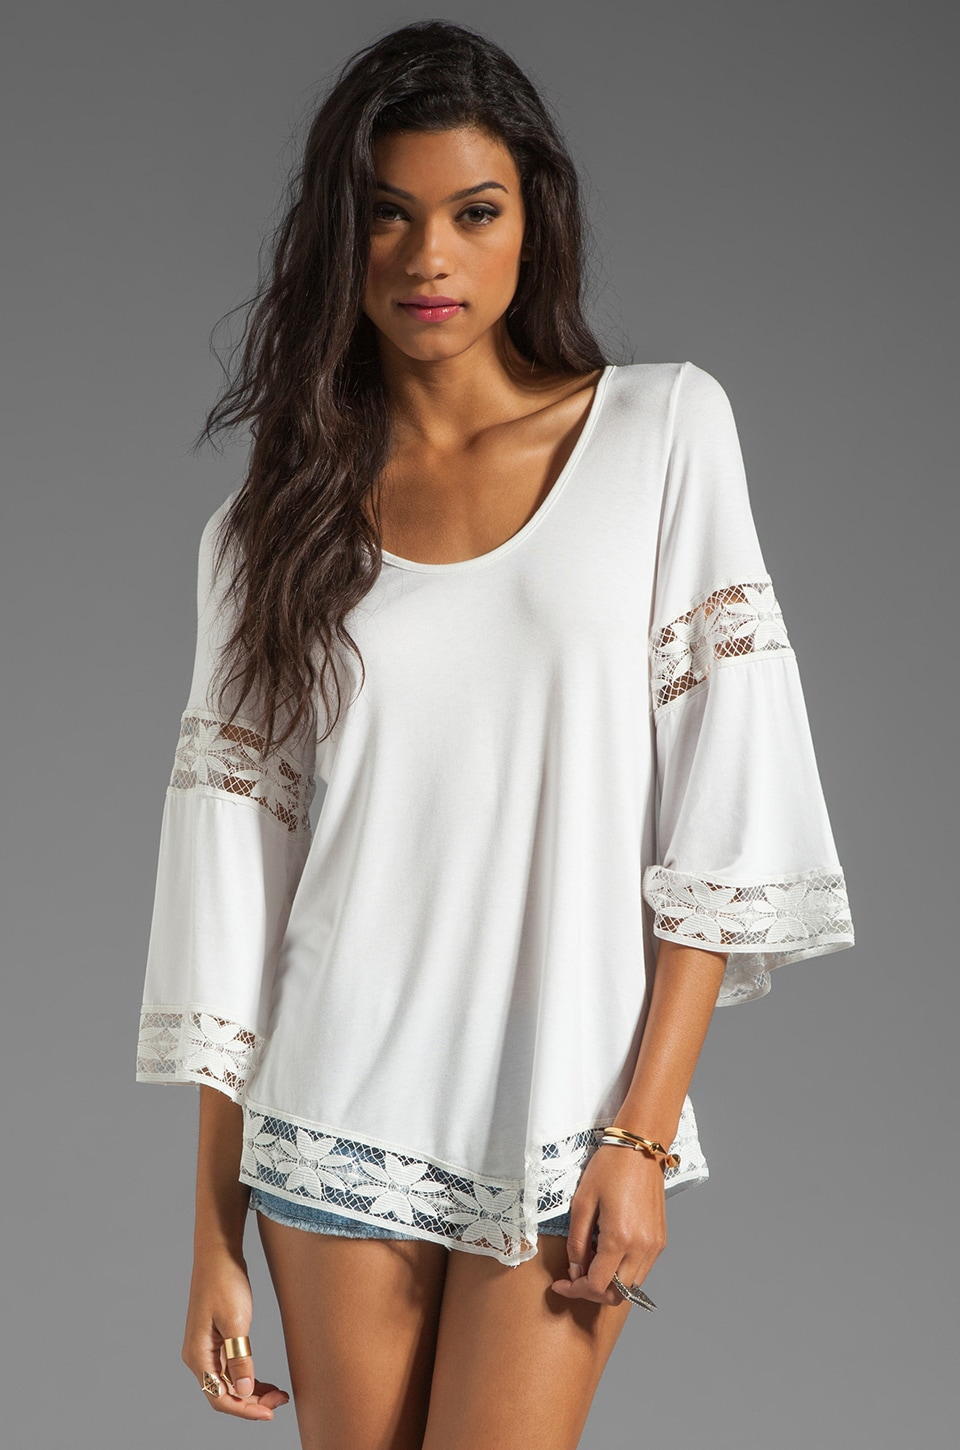 VAVA by Joy Han Erika Lace Detail Top in White